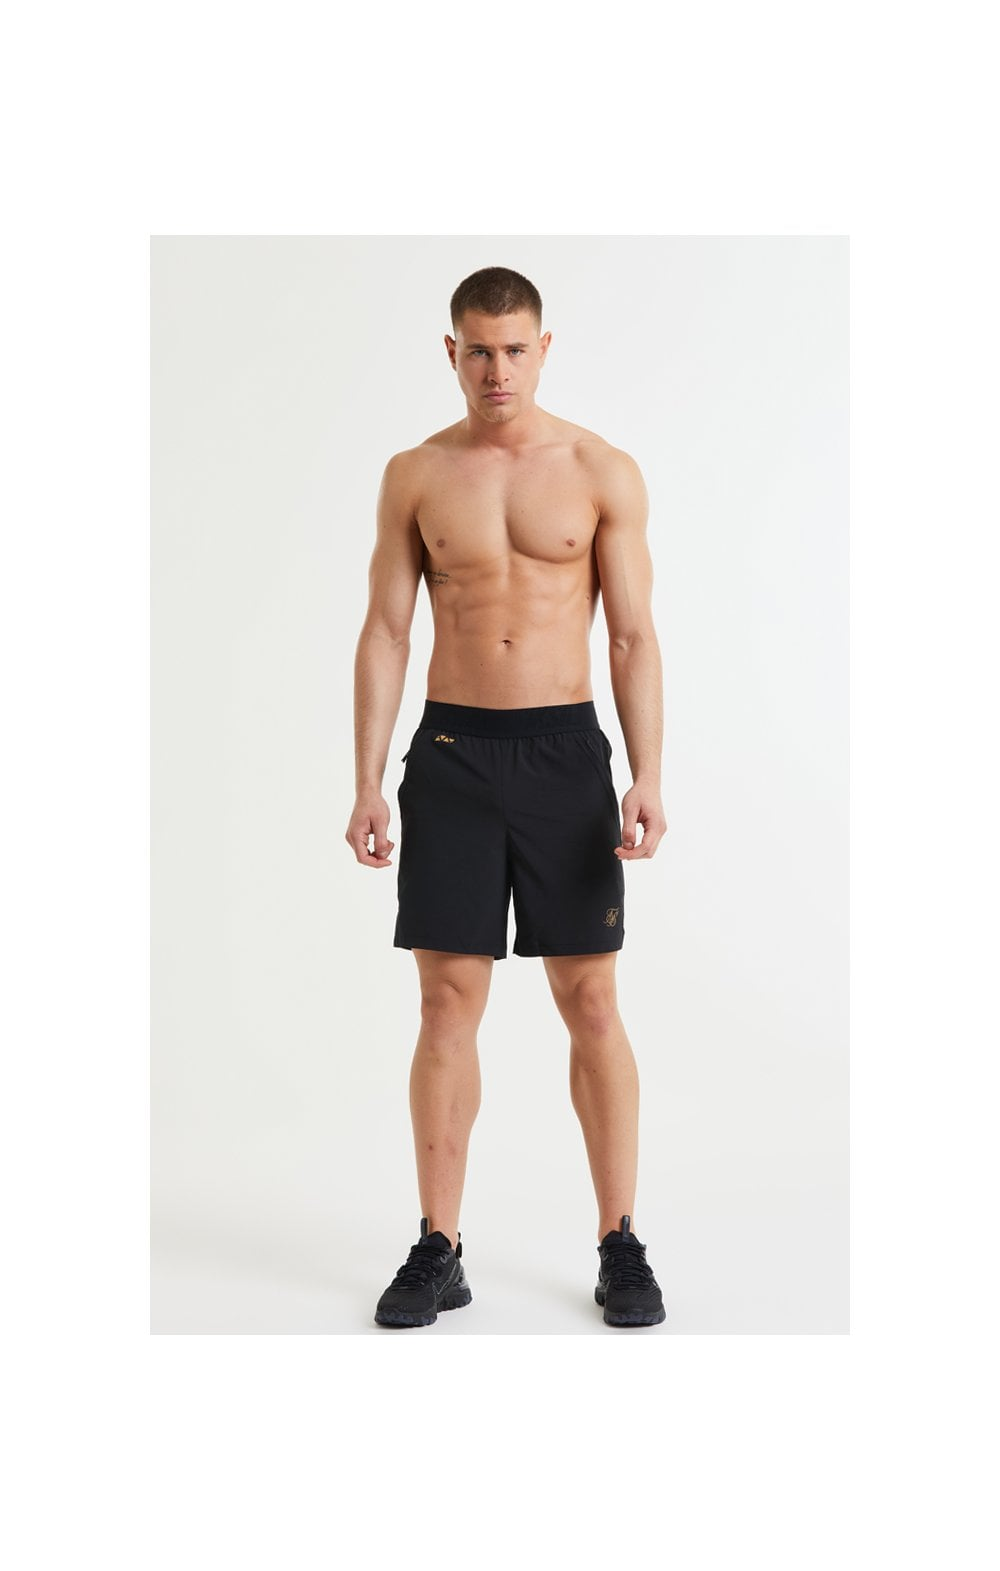 SikSilk Pressure Woven Long Shorts - Black (4)